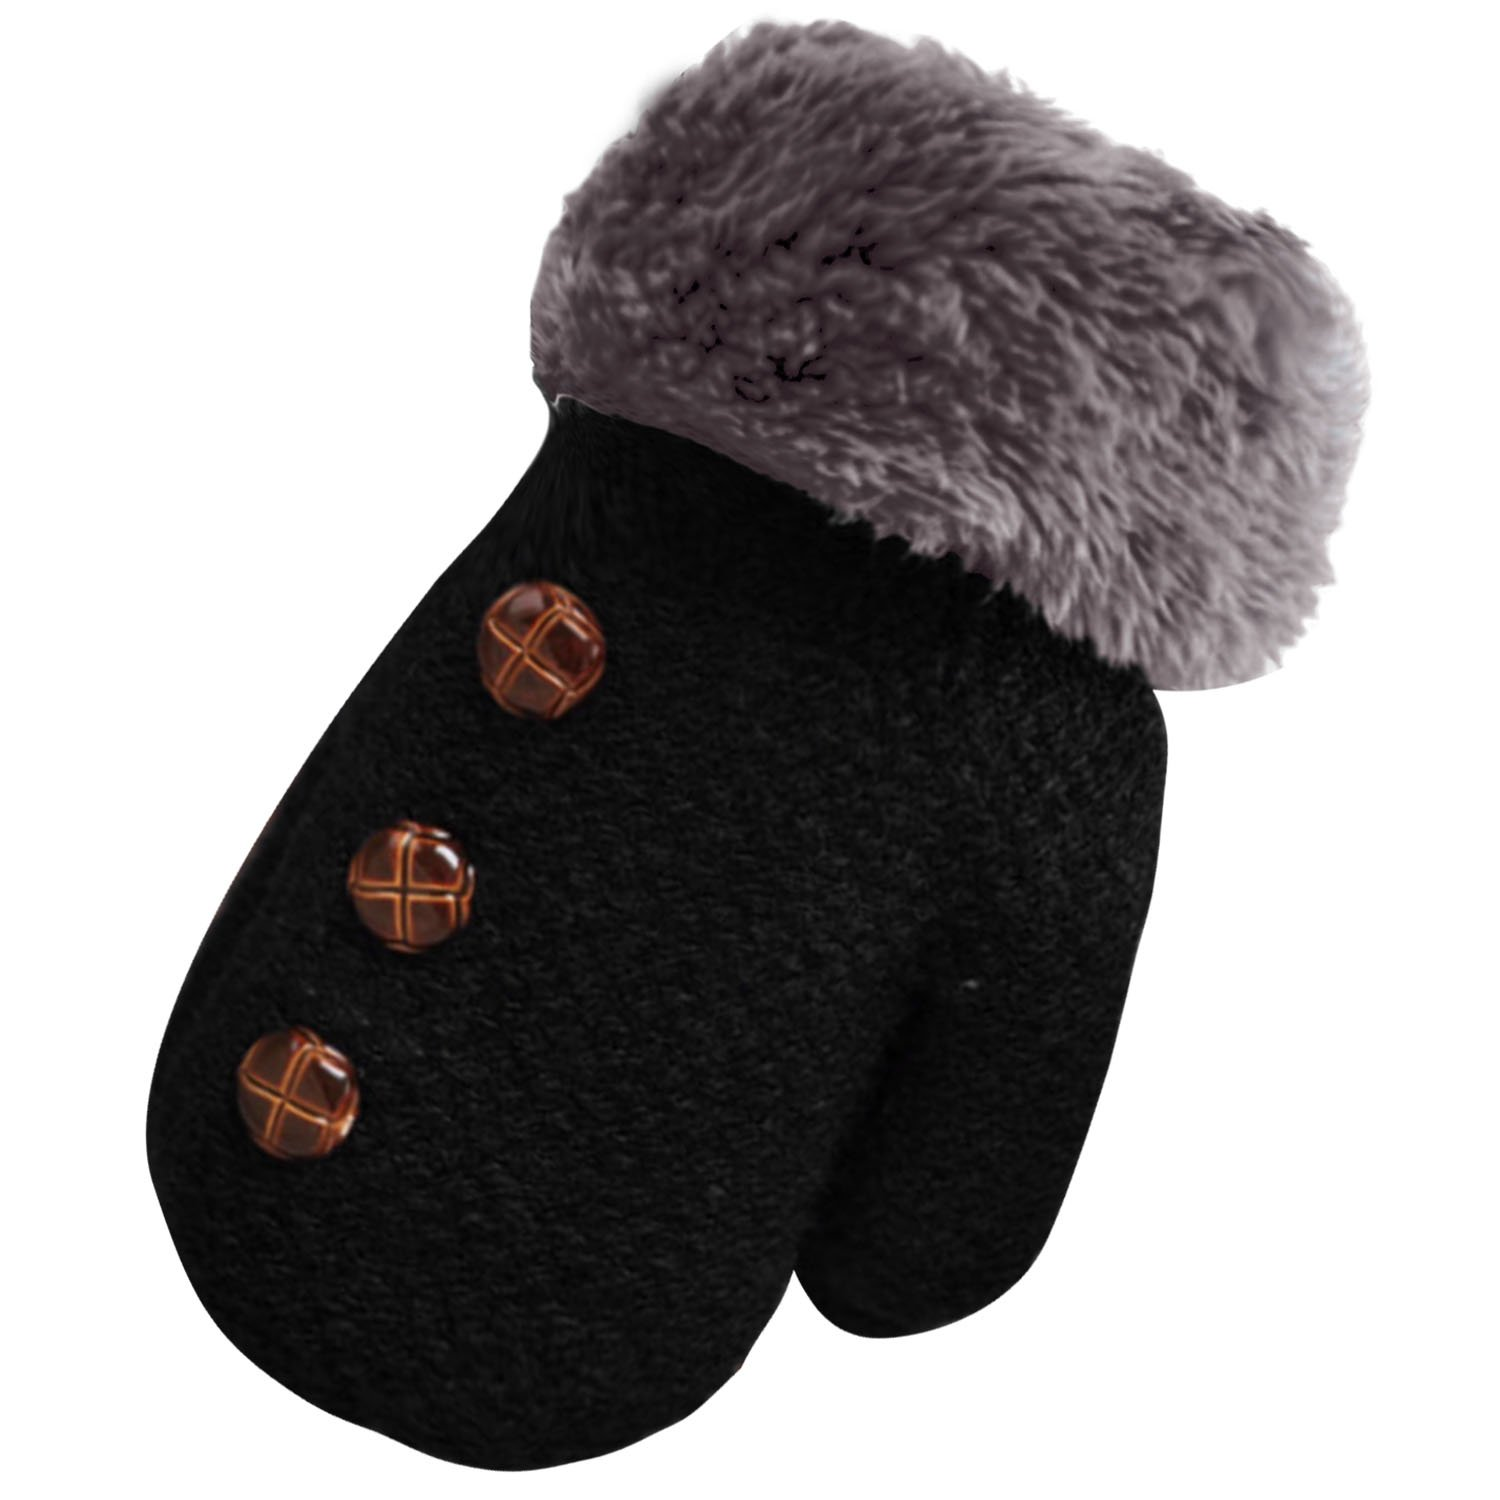 Cute Winter Warm Kid Baby Children Boy Girl Glove Coffee Gosear